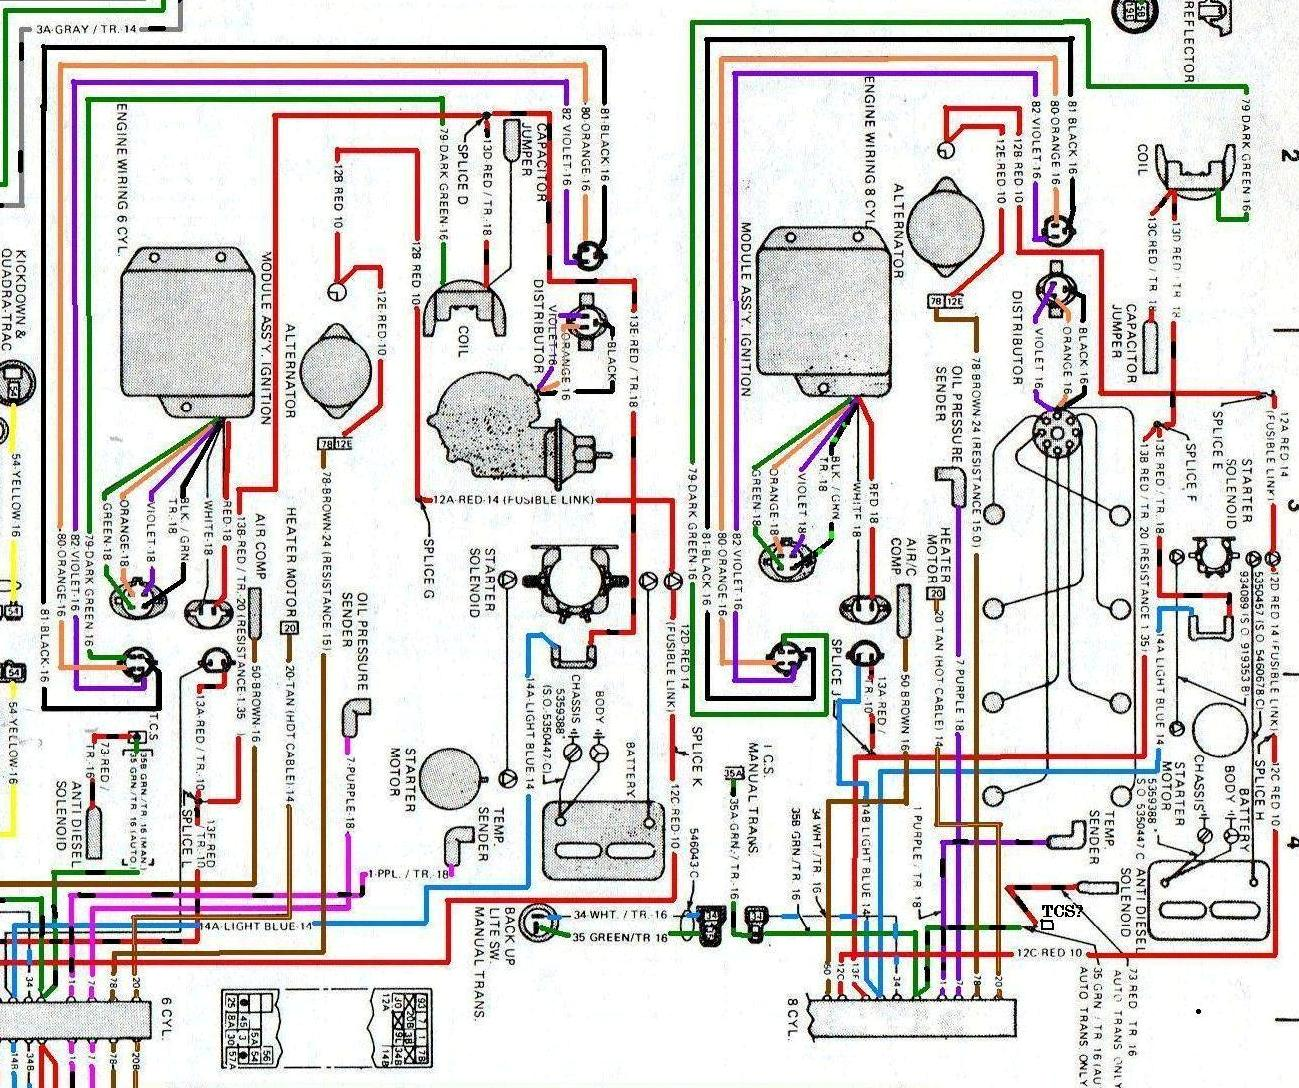 Jeep Cj7 Dash Wiring Diagram - Options -Indexes for Wiring Diagram  Schematics | 1980 Cj7 Wiring Schematic |  | Wiring Diagram Schematics